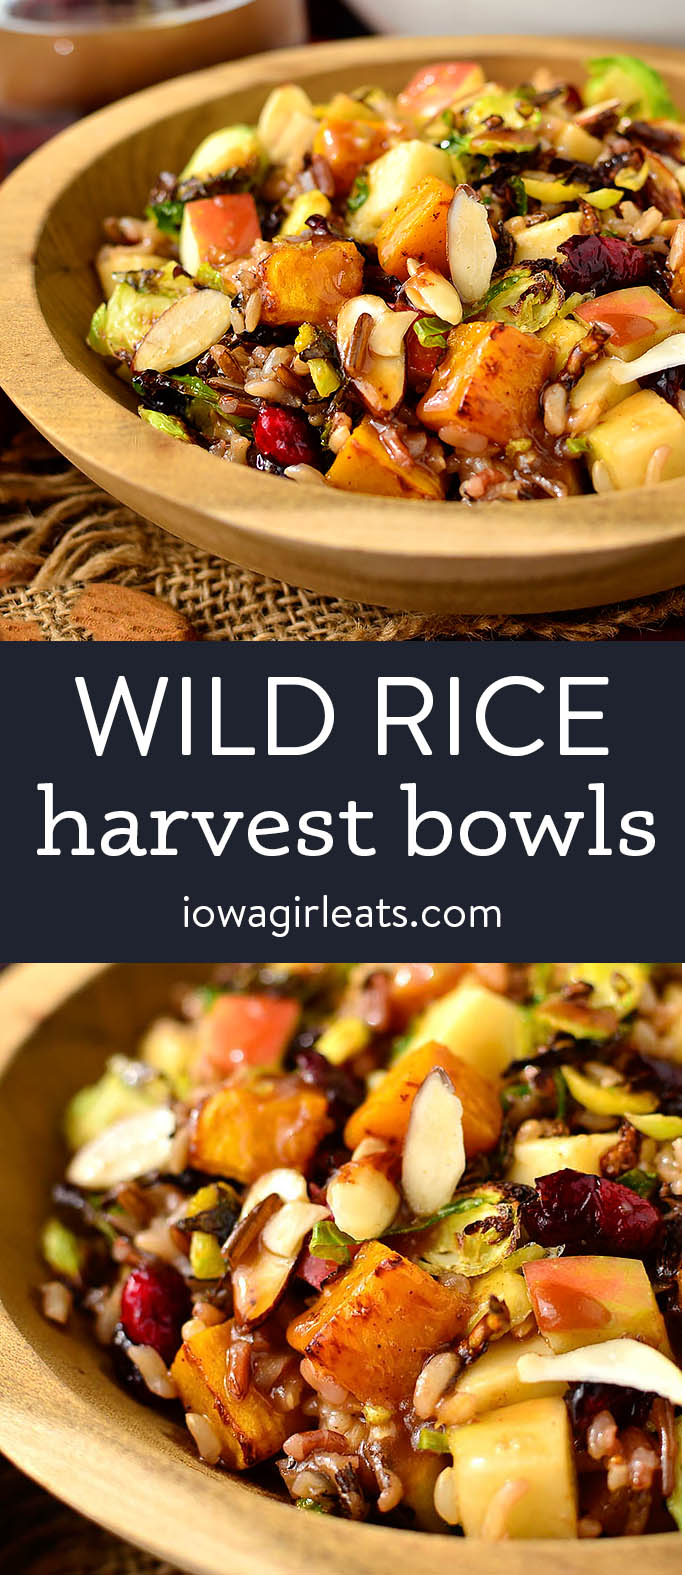 photo collage of wild rice harvest bowls